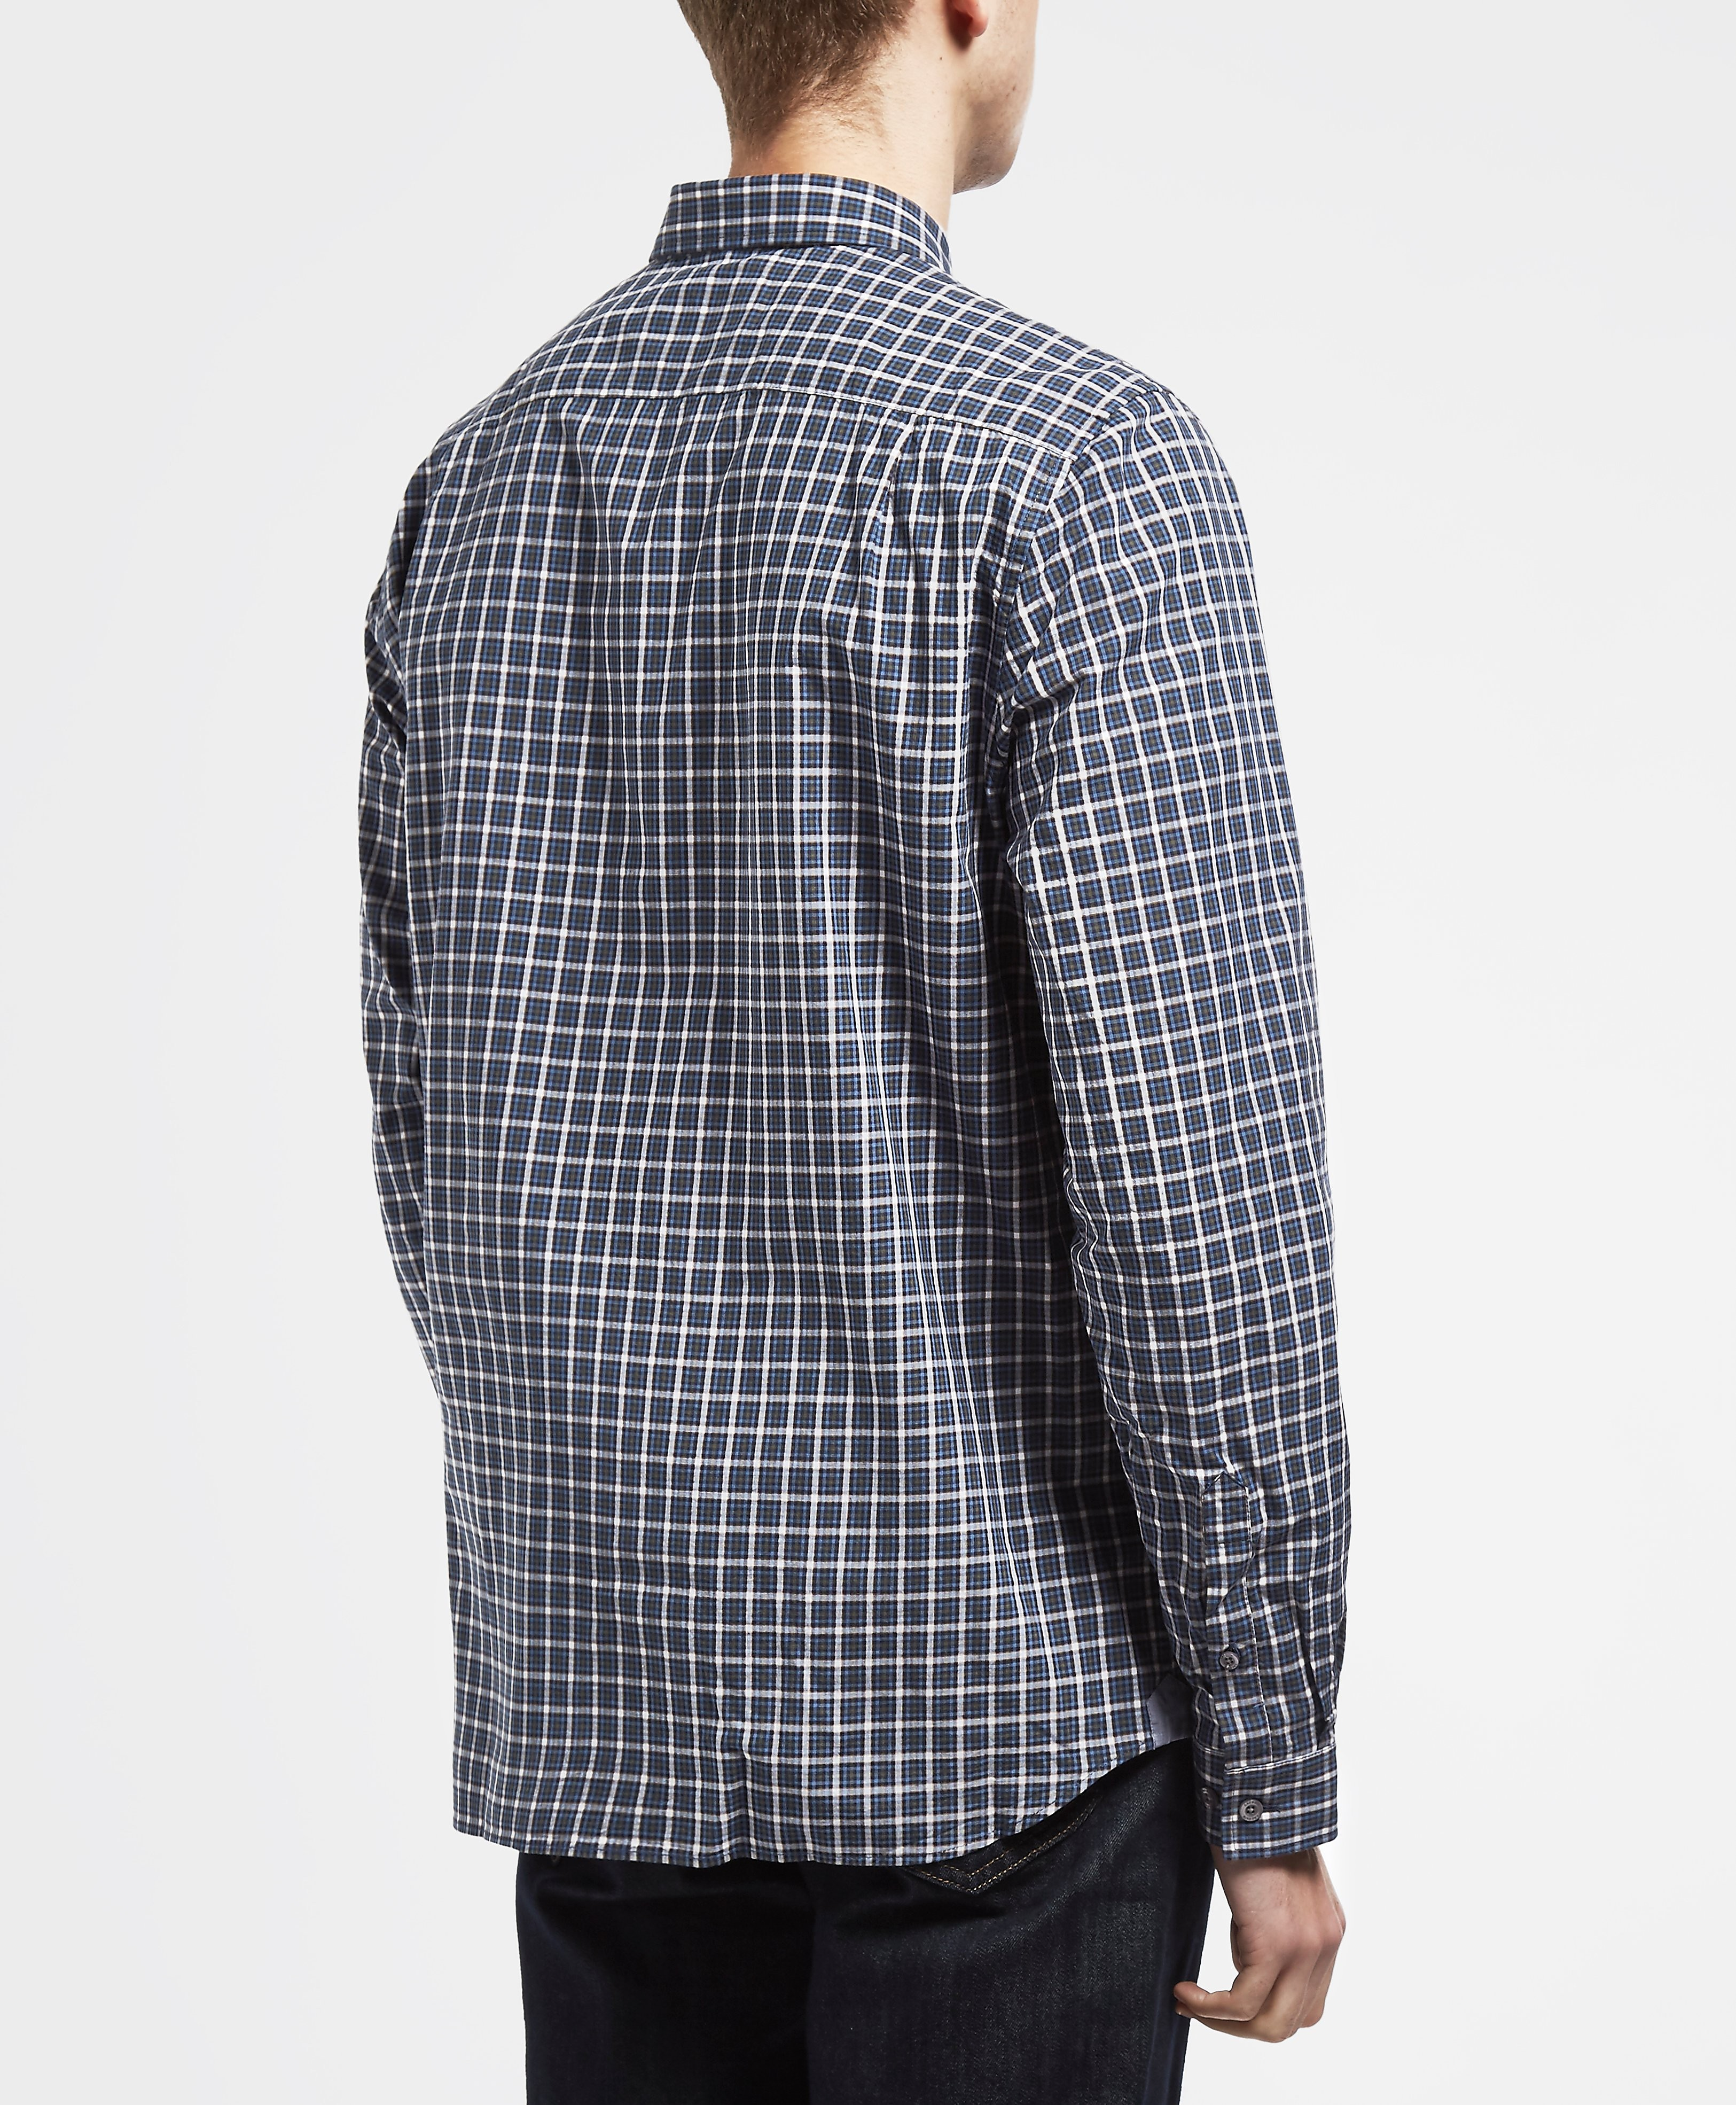 Lacoste Fine Checked Long Sleeve Shirt